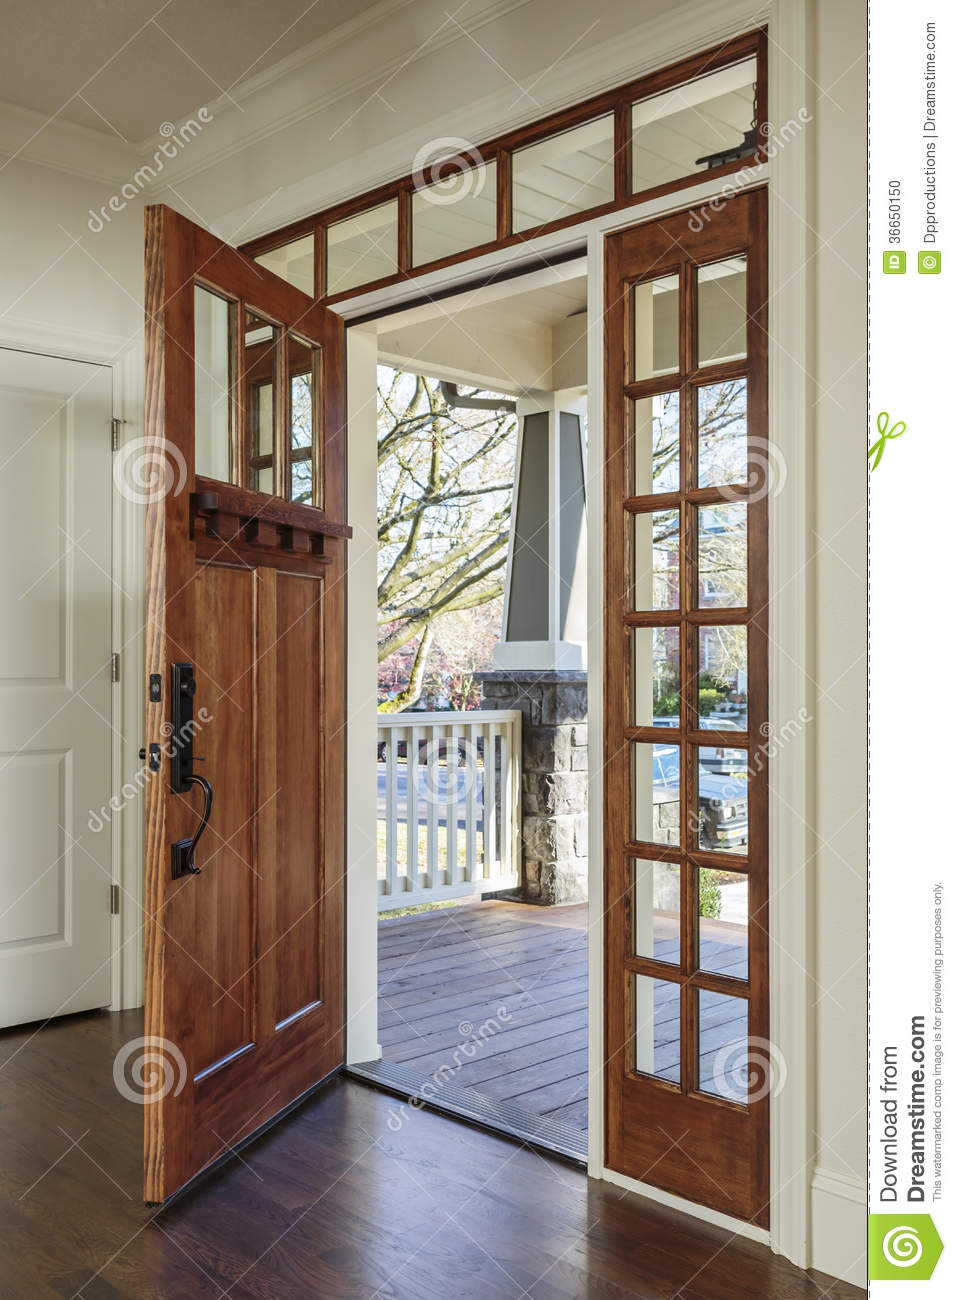 Interior shot of an open wooden front door stock photo for Entry door with window that opens